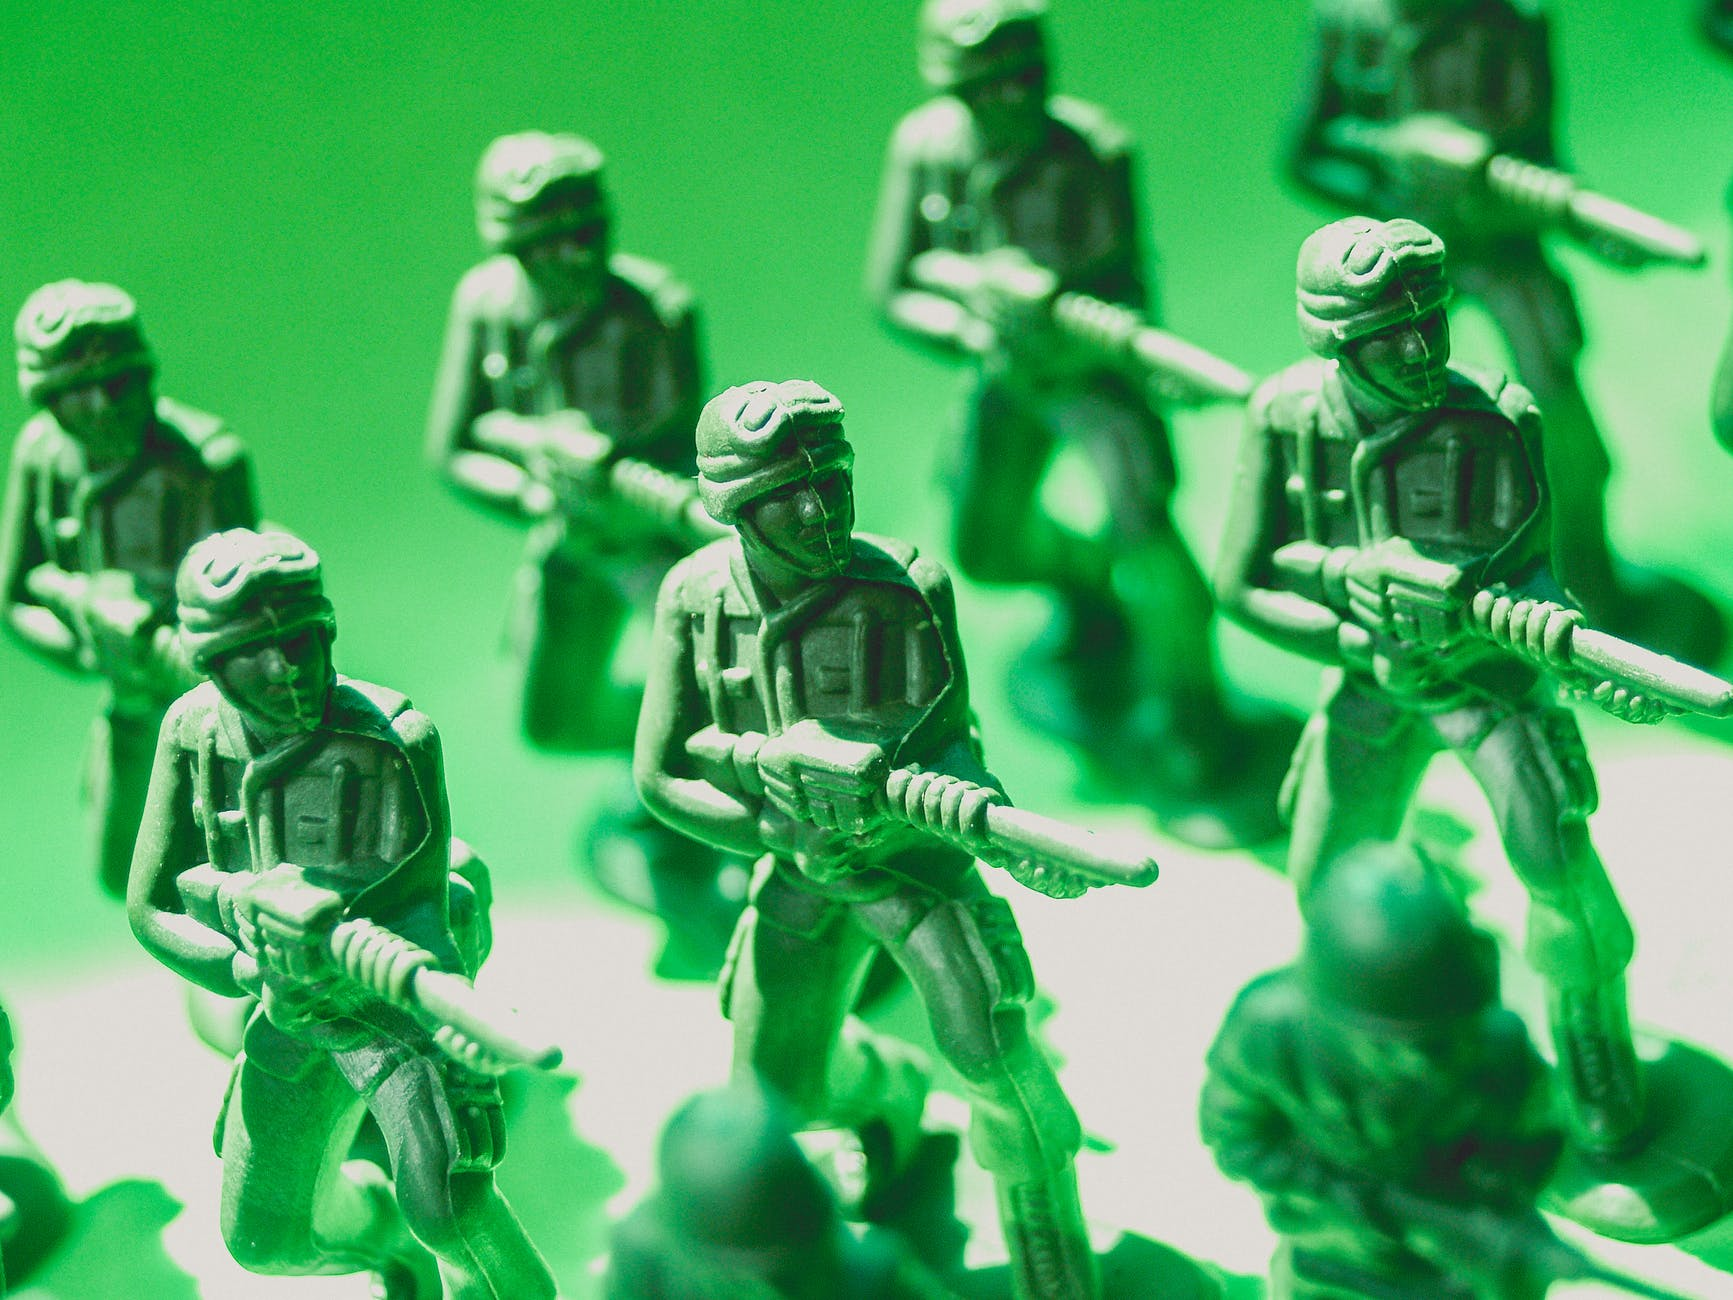 toy soldiers macro photo